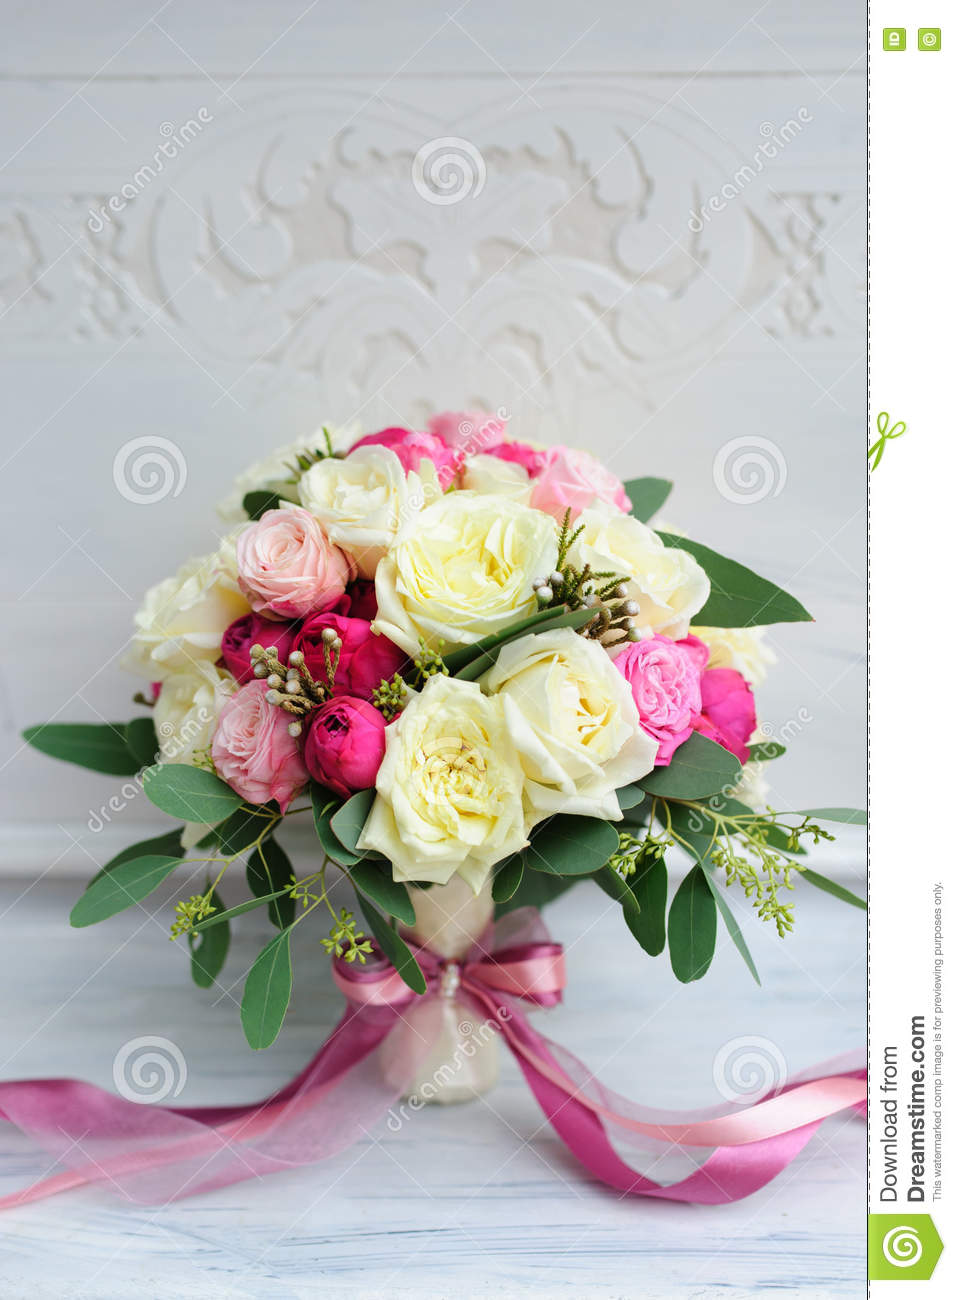 Beautiful Wedding Flower Bouquet For Bride Stock Photo Image Of